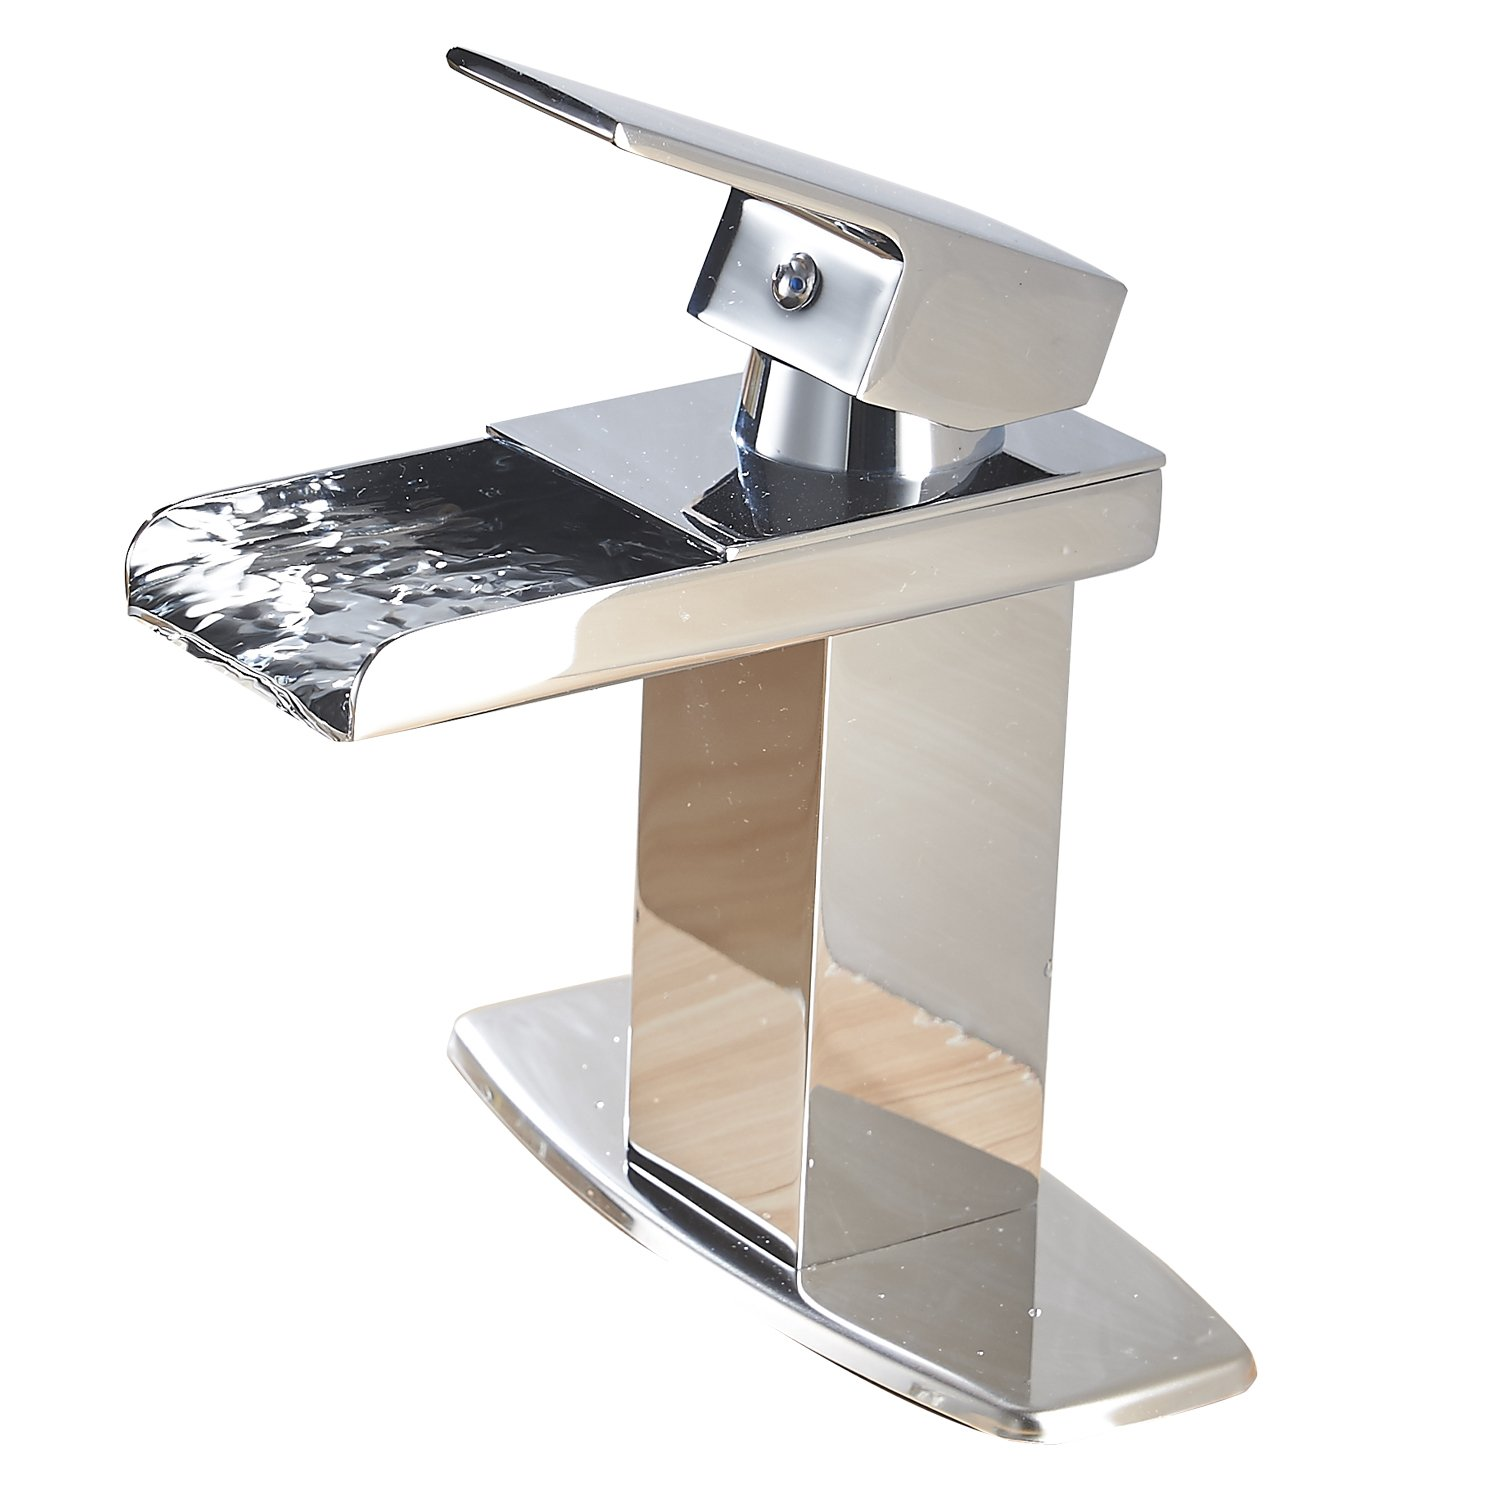 Eyekepper 600985 Modern Waterfall Bathroom Sink Faucet